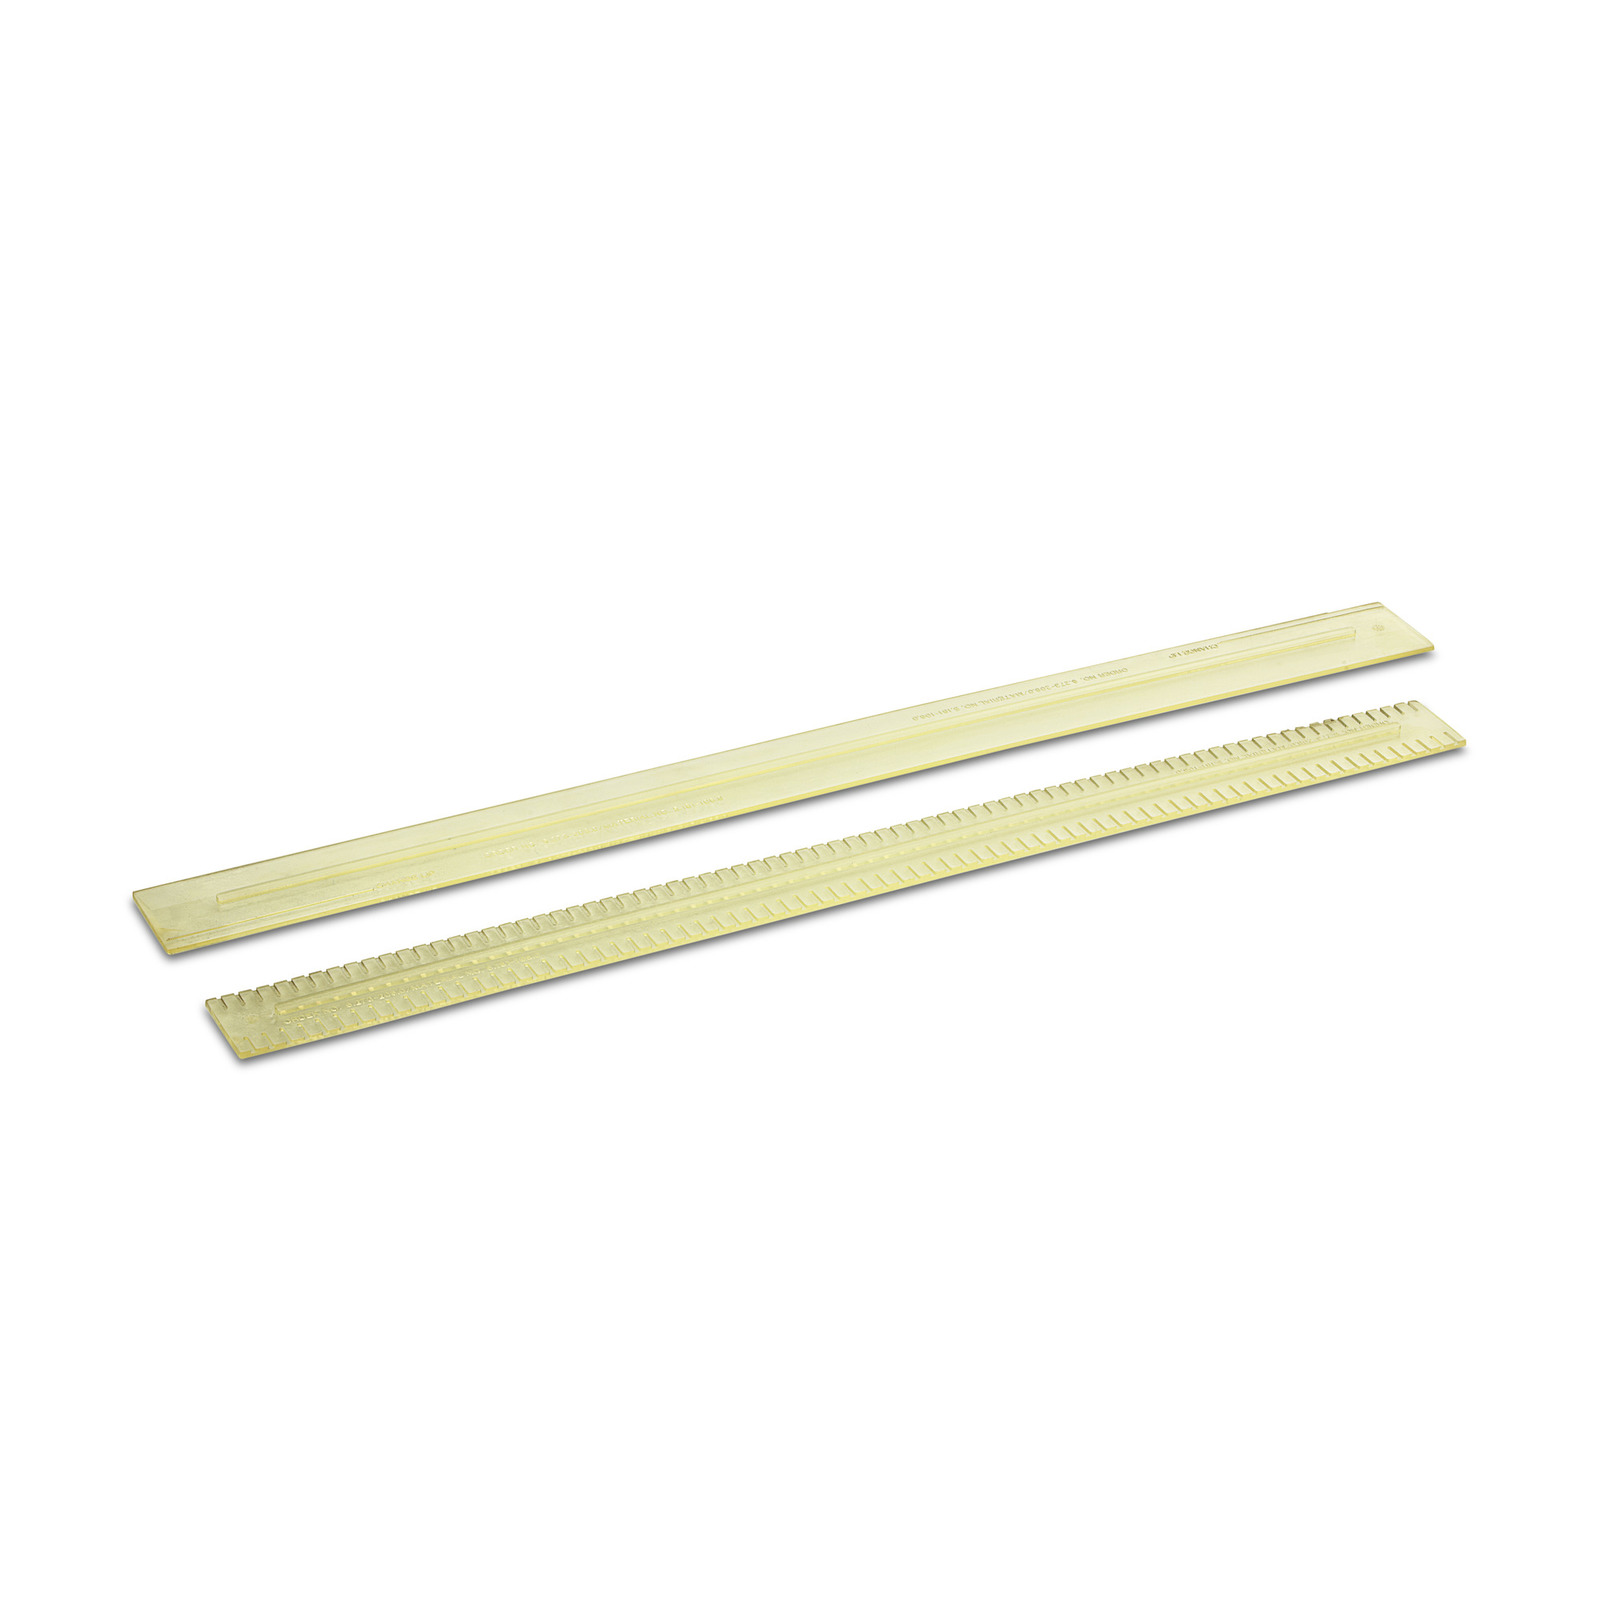 Karcher 6.273-229.0 Squeegee Blades 35 Inches Inti-stripe Oil Resistant Grooved 890Mm EAN 4002667749762